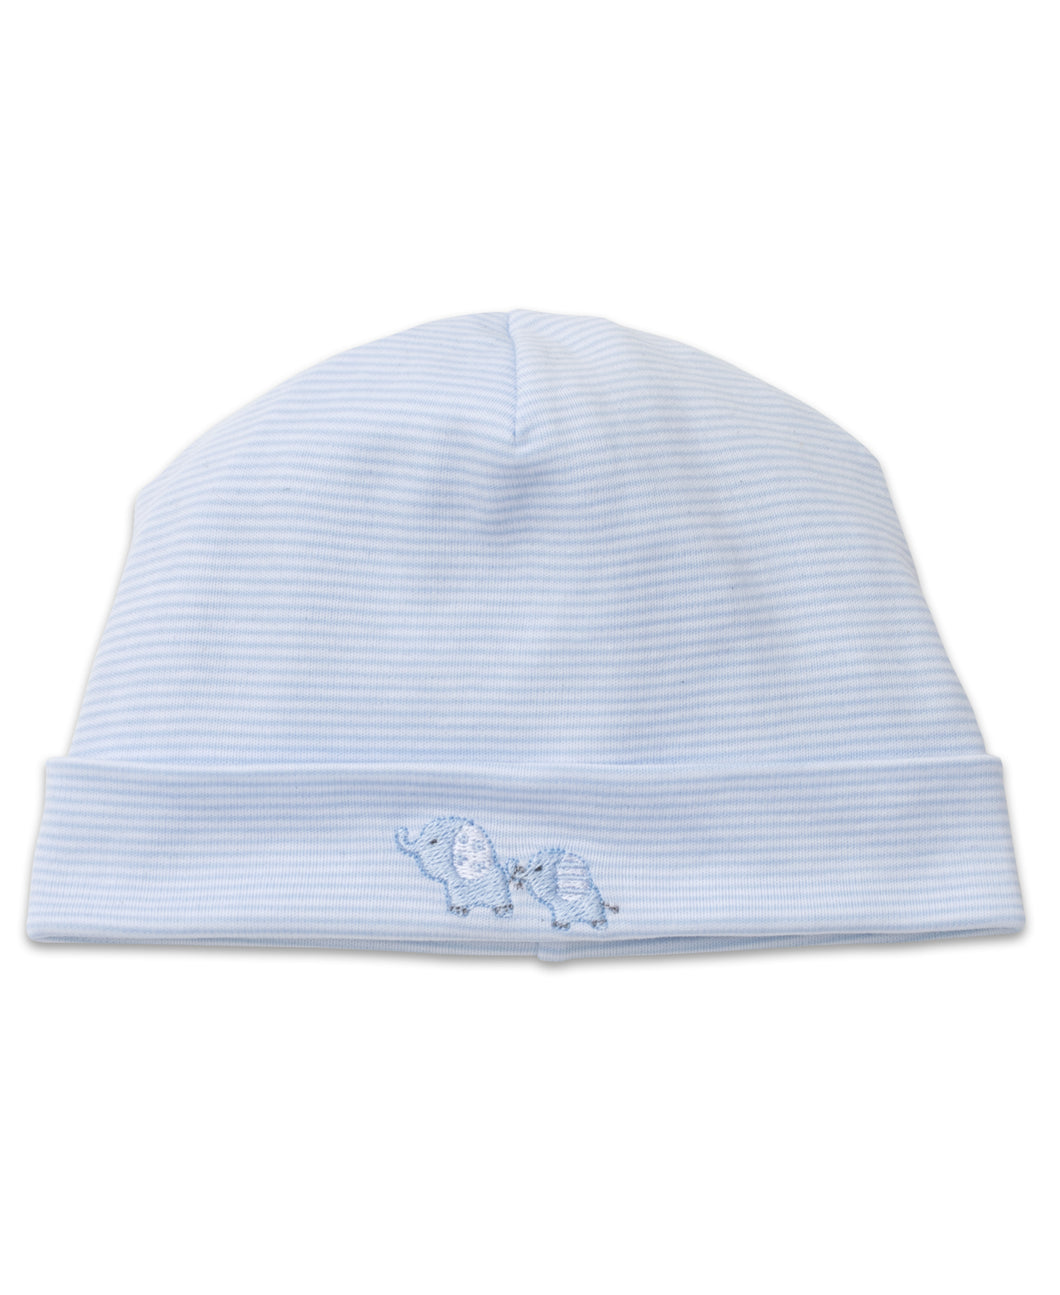 Baby Trunks Hat - Light Blue